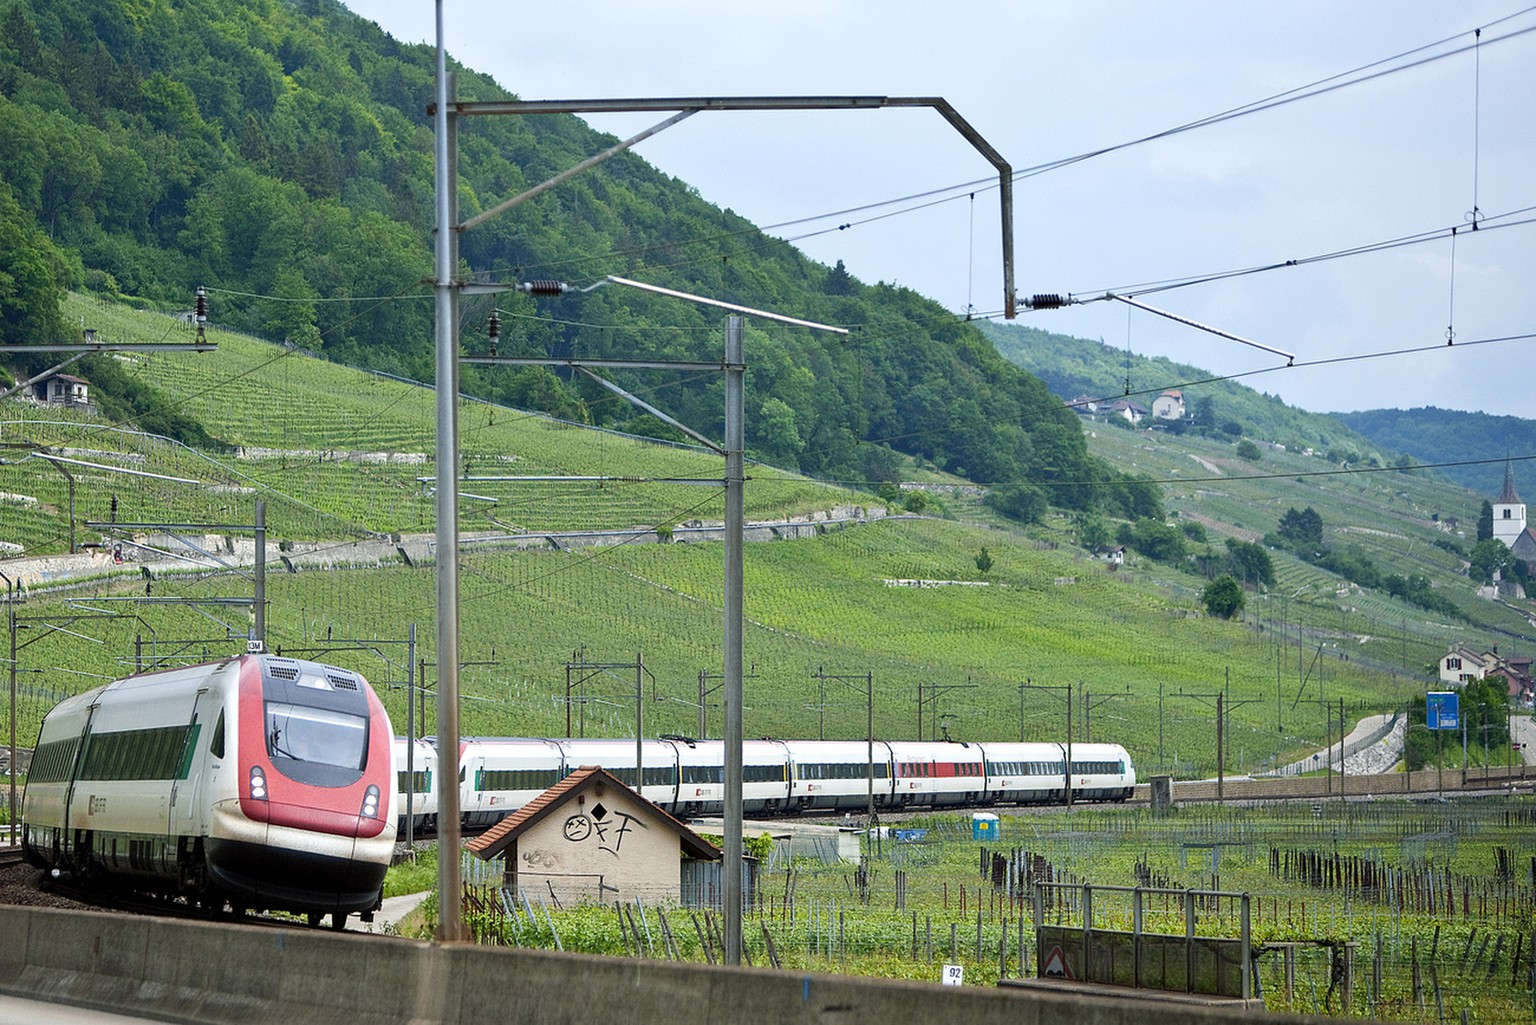 An intercity tilting train ICN traverses the vineyards near La Neuveville on Lake Biel in the canton of Berne, Switzerland, pictured on May 28, 2010. (KEYSTONE/Dominique Derrer)  Ein Intercity-Neigezug ICN durchquert am 28. Mai 2010 die Weinberge bei La Neuveville am Bielersee im Kanton Bern. (KEYSTONE/Dominique Derrer)